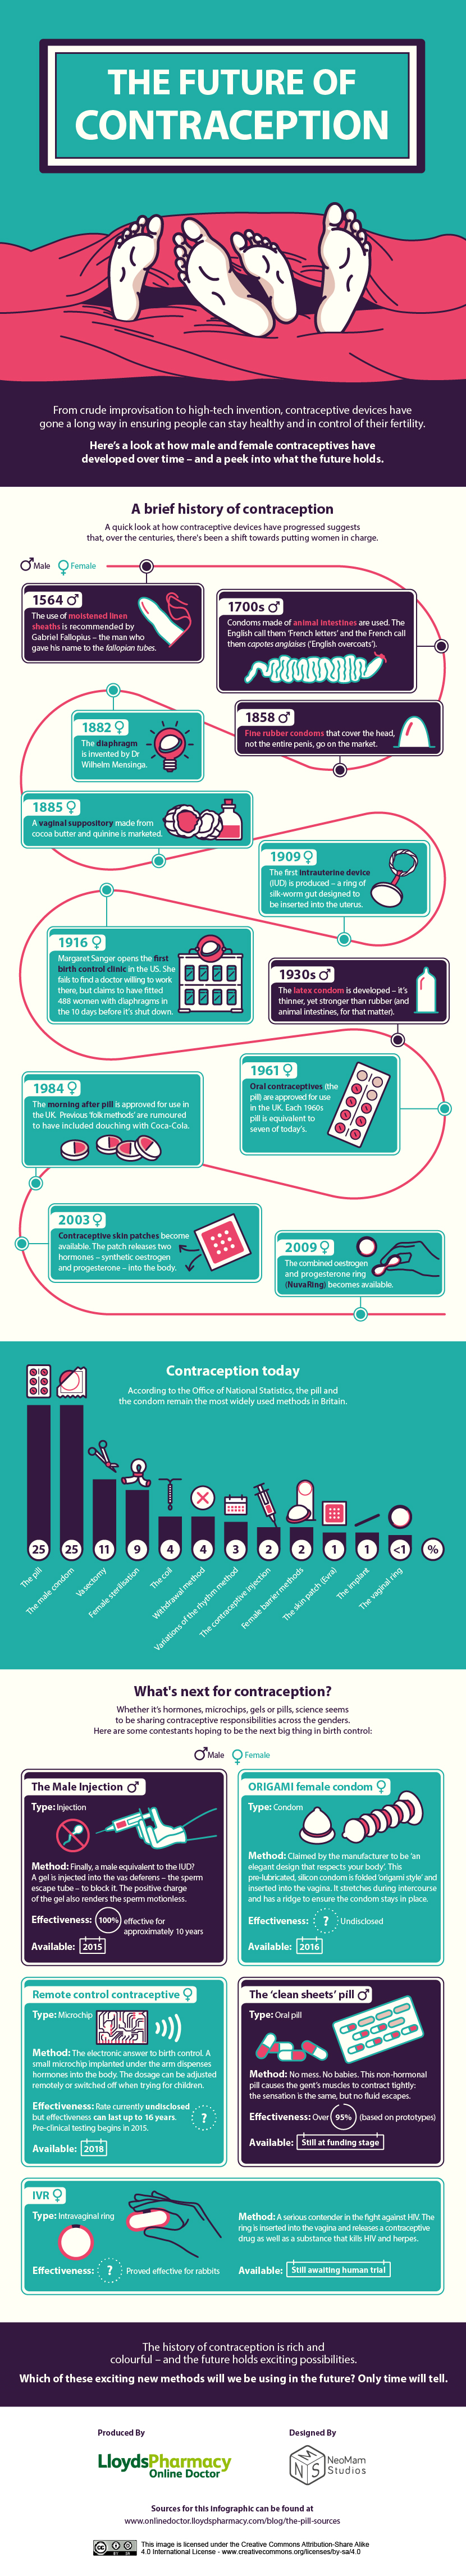 infographic-the-future-of-contraception.jpg